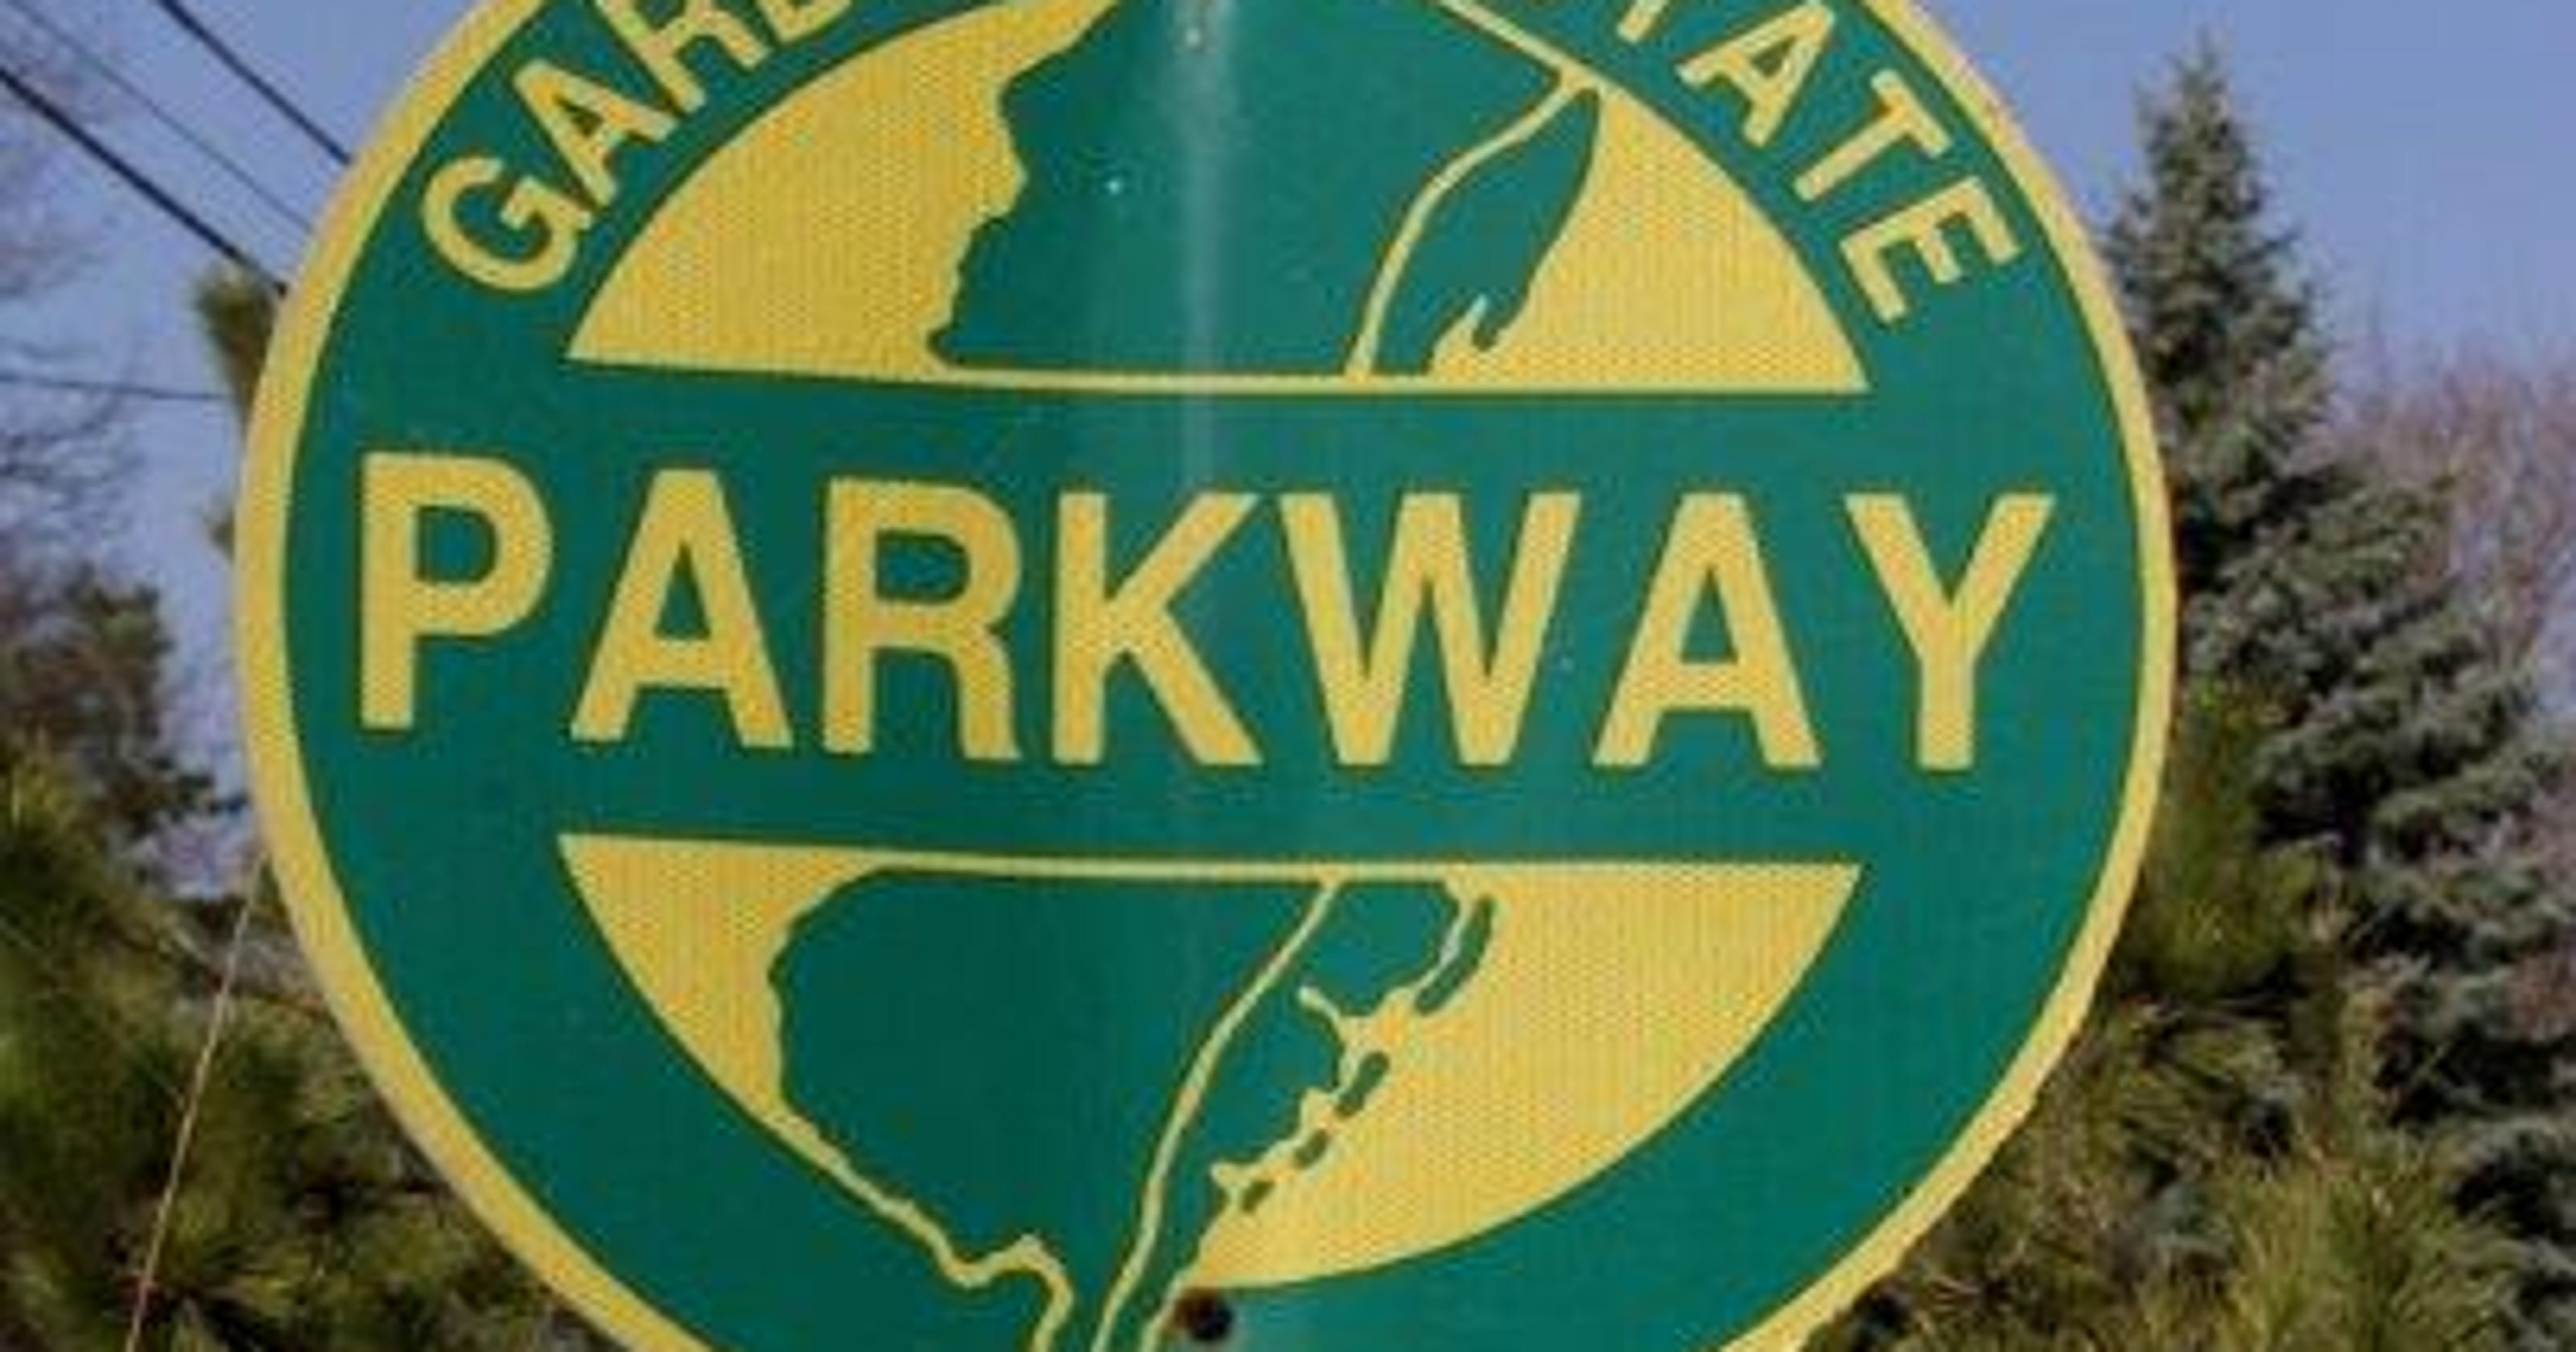 One Injured In Garden State Parkway Crash Near Middletown